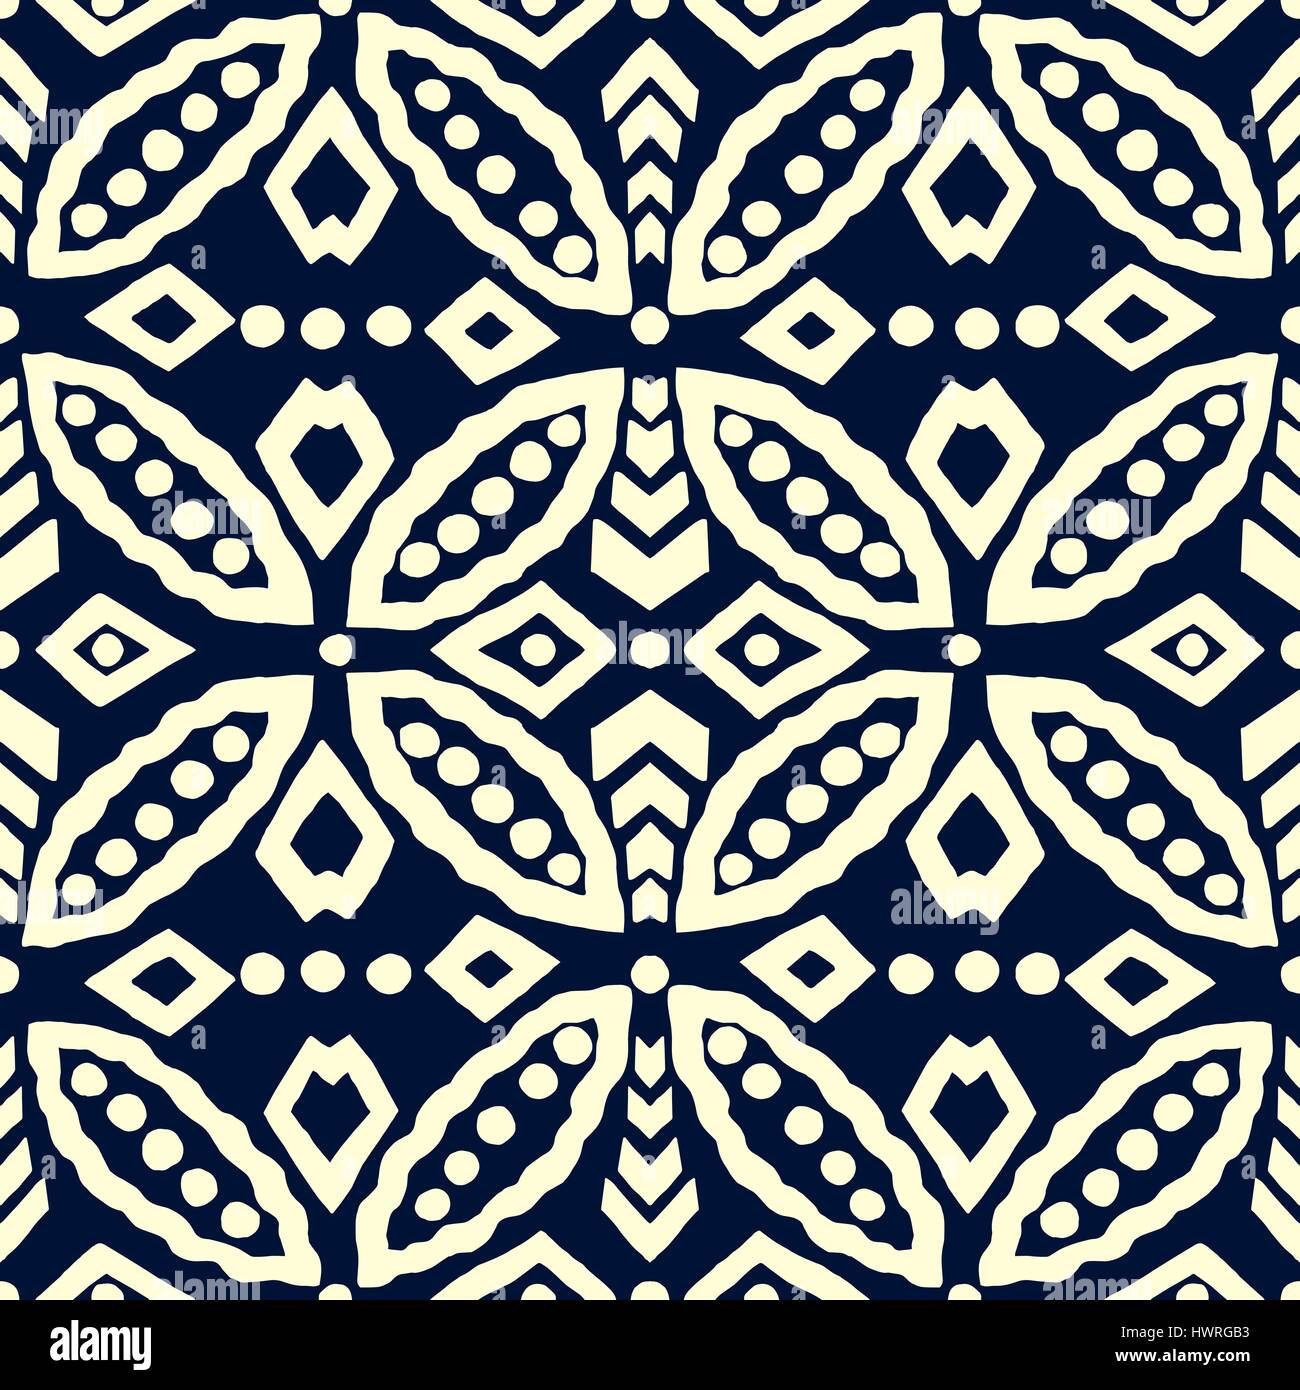 Traditional block printed geometric ornament, handmade Russian motif with  circular and rhomboid shapes. Ecru